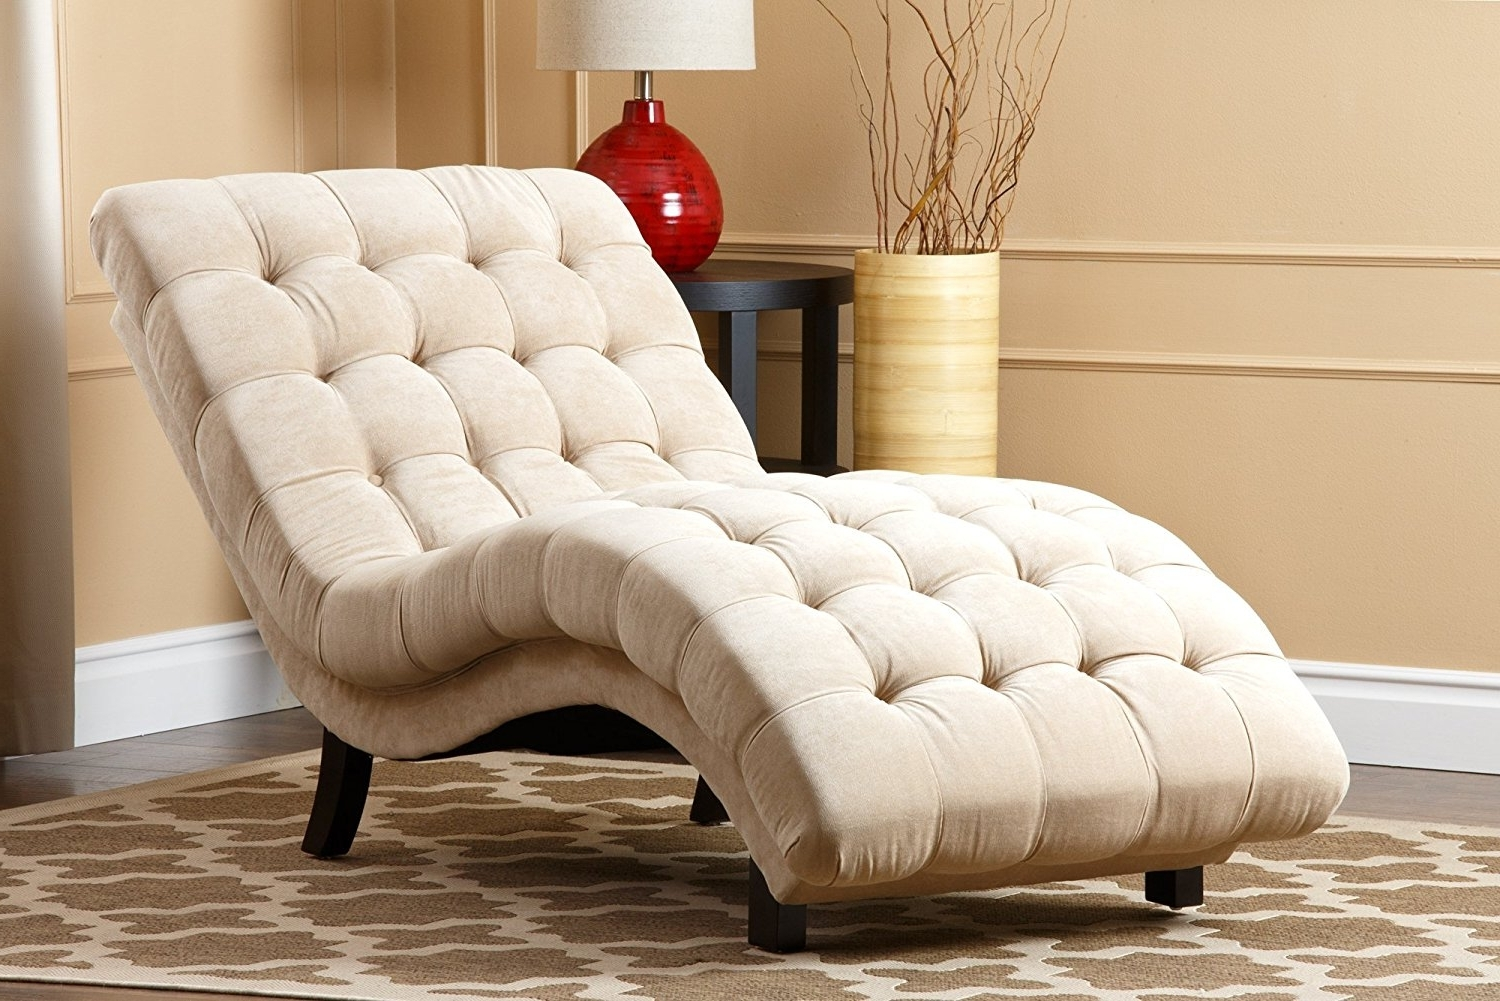 Amazon: Abbyson Carmen Cream Fabric Chaise: Home & Kitchen Intended For Popular Upholstered Chaise Lounges (View 13 of 15)